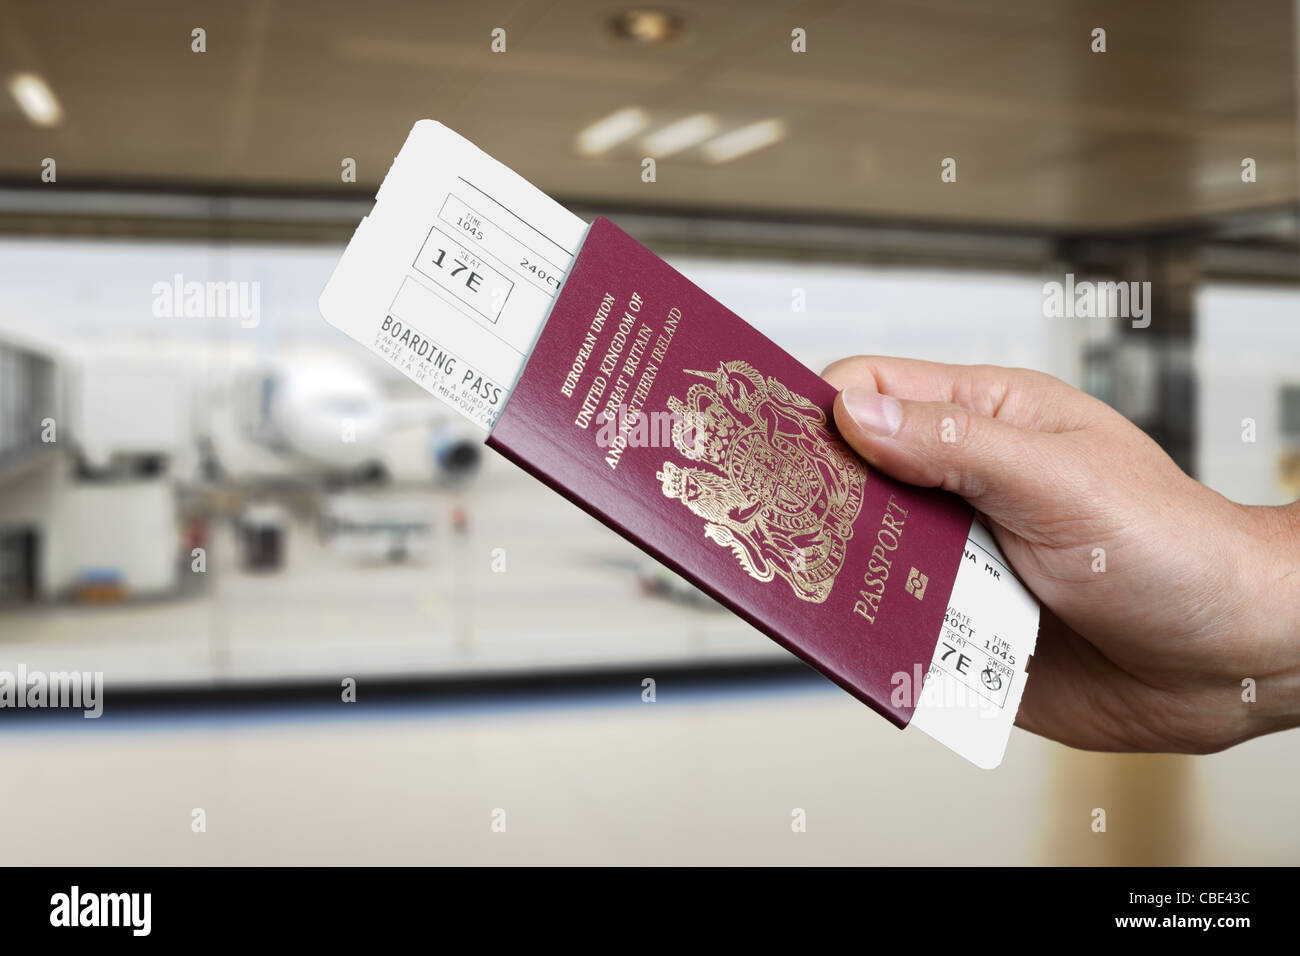 Checking in for a flight at the airport - Stock Image